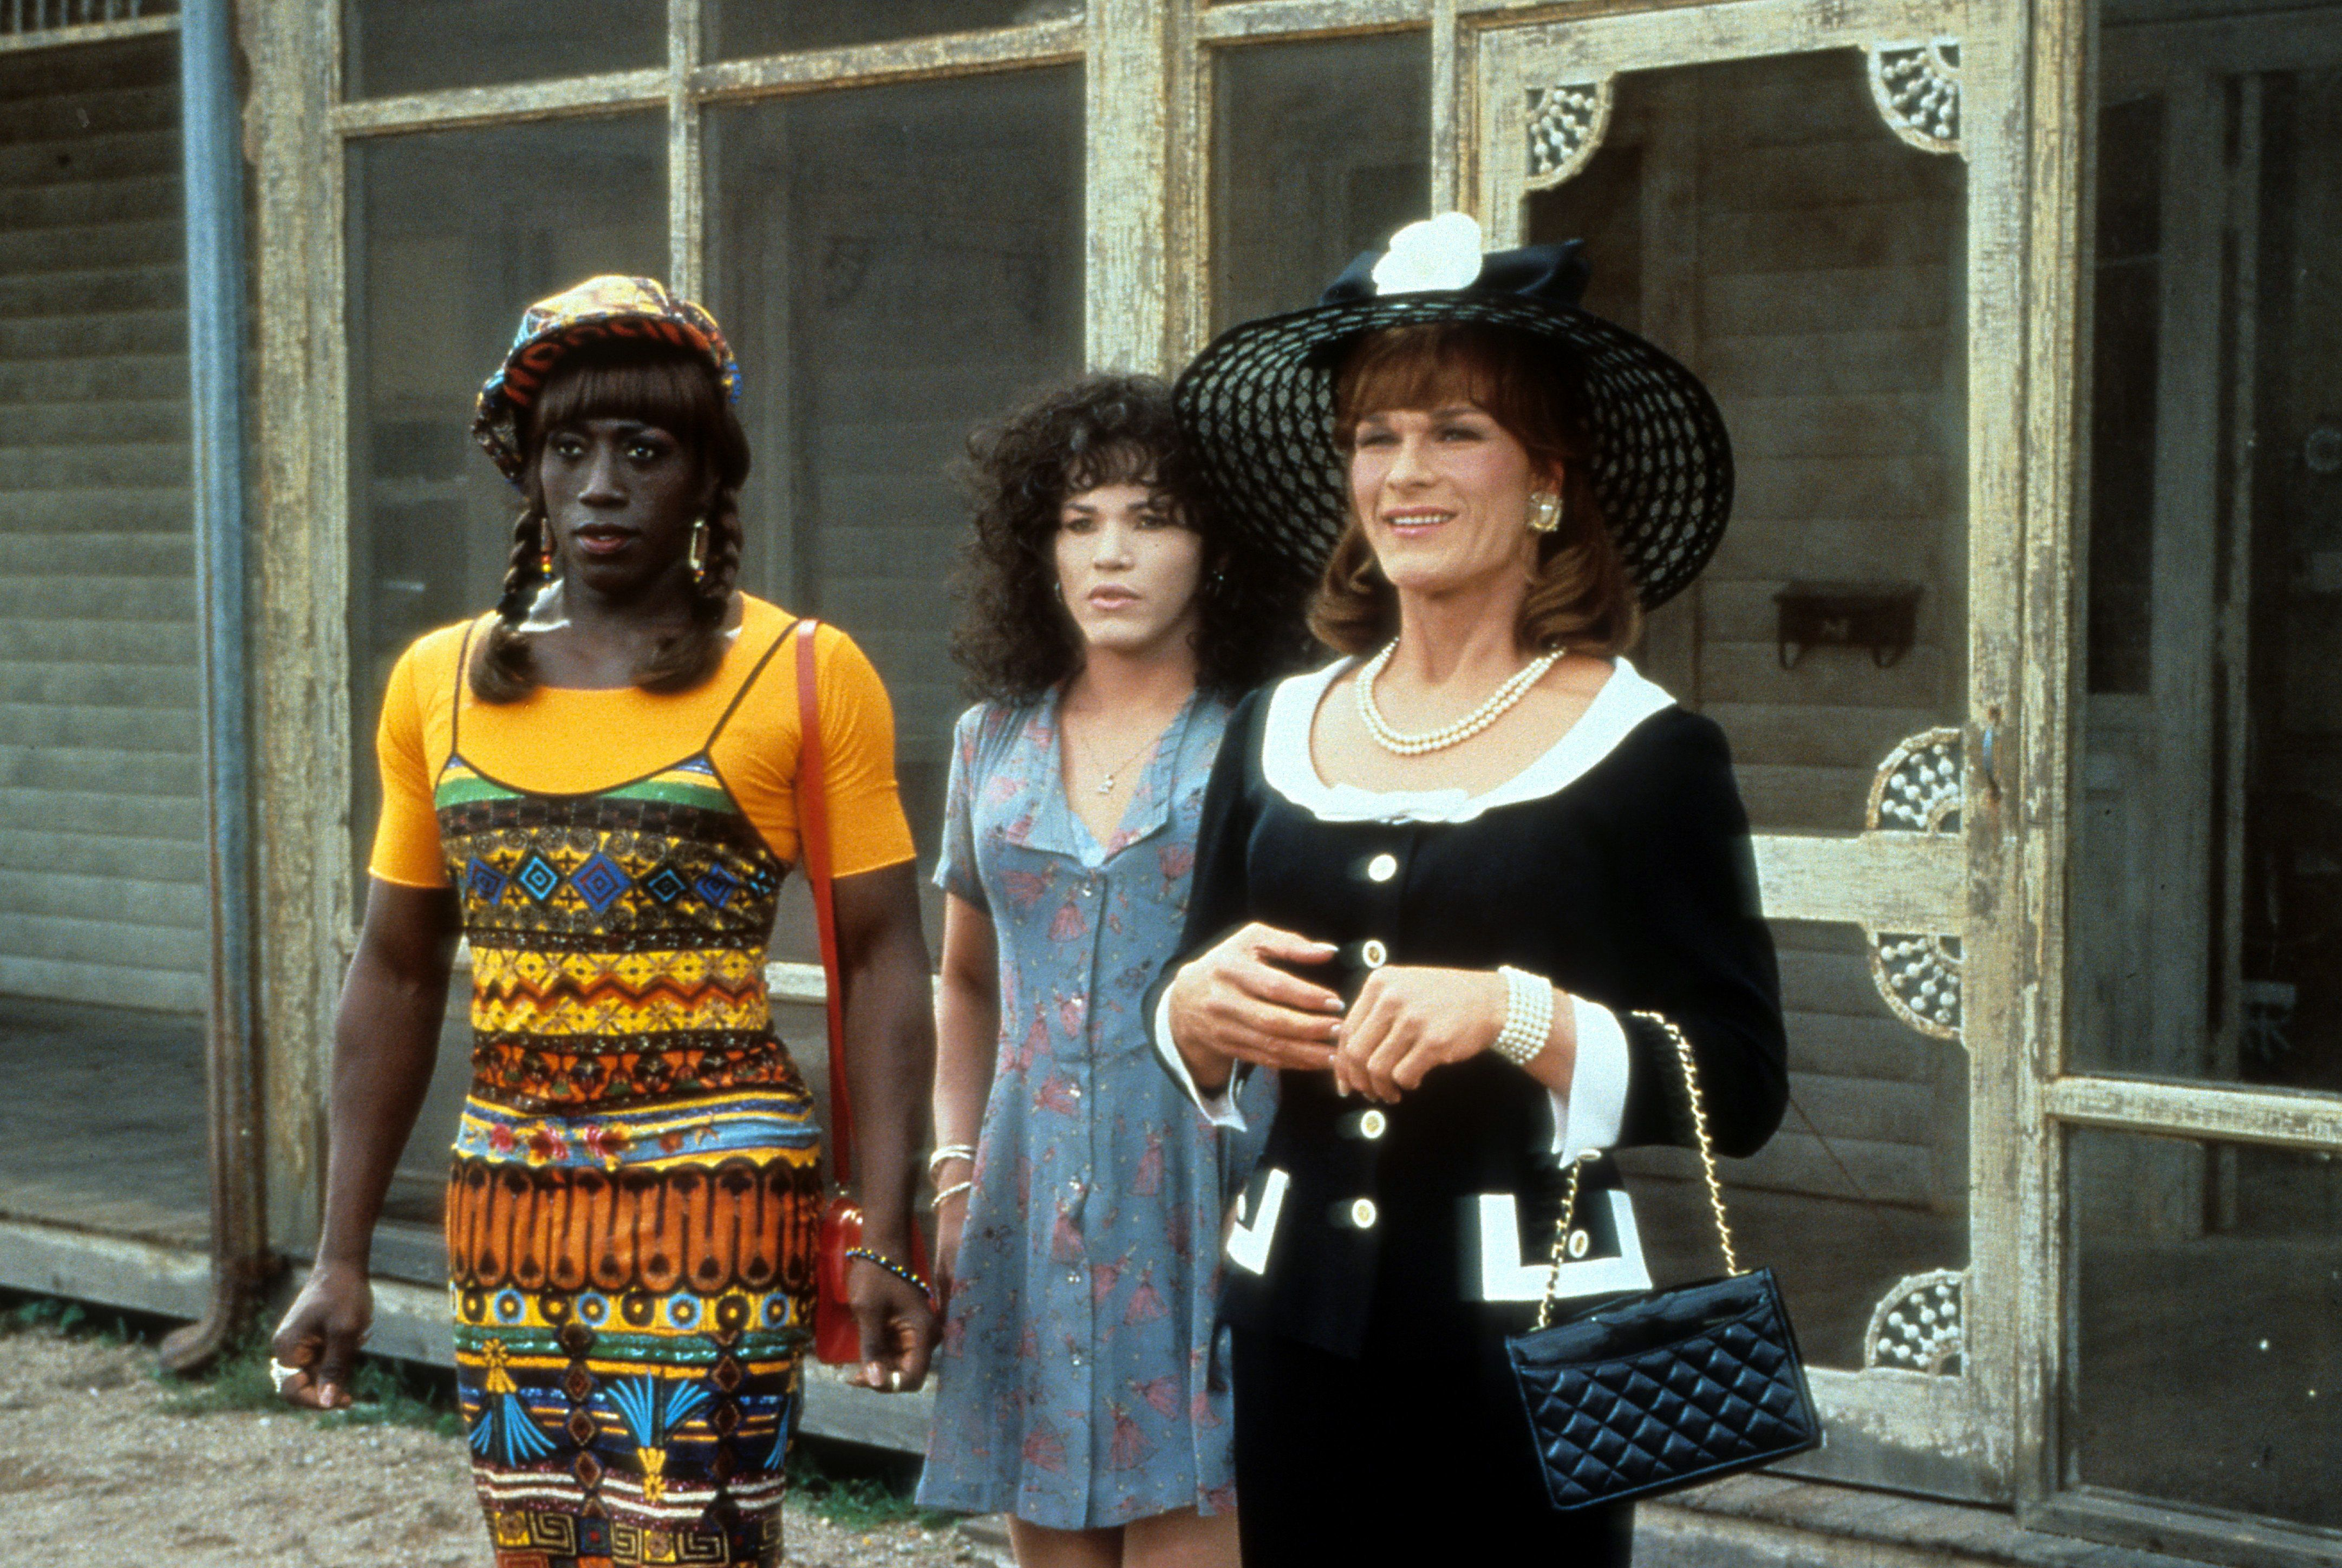 Wesley Snipes, John Leguizamo and Patrick Swayze stand outside a run down building in a scene from the film 'To Wong Foo Thanks for Everything, Julie Newmar', 1995. (Photo by Universal/Getty Images)